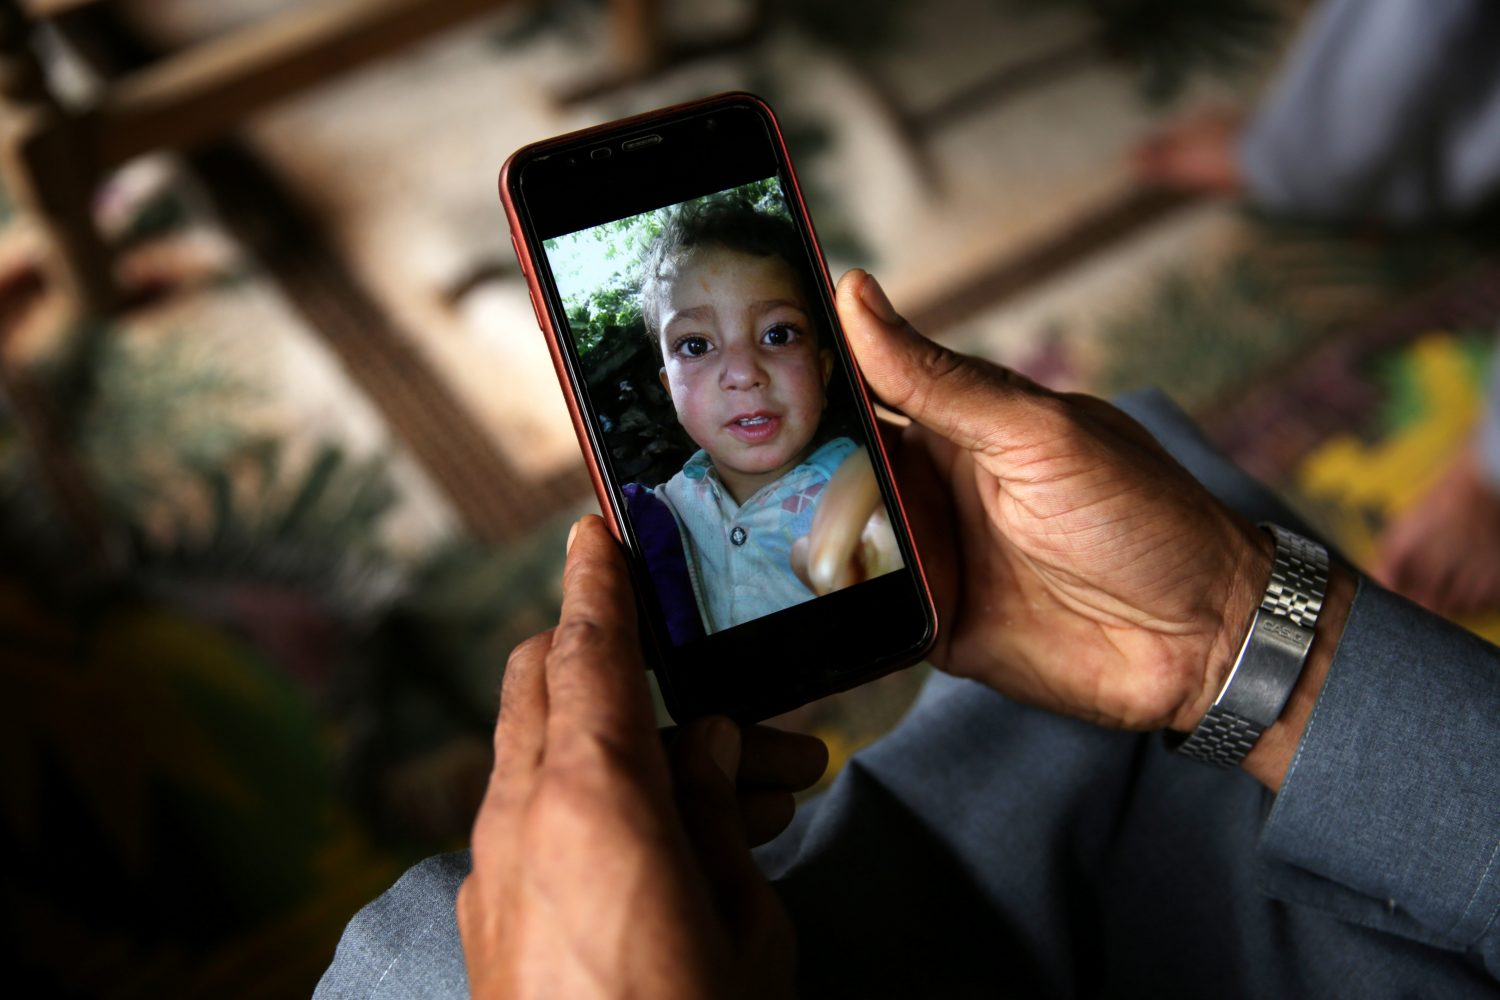 A relative displays the picture of 4-year-old Mohammad Ayan Ali, who, according to his family, was killed after he found a device that looked like a toy and exploded in his hands at home in the village of Jabri, in Neelum Valley, in Pakistan-administrated Kashmir. Pakistan's military says the device was an unexploded cluster bomb.. REUTERS/Saiyna Bashir